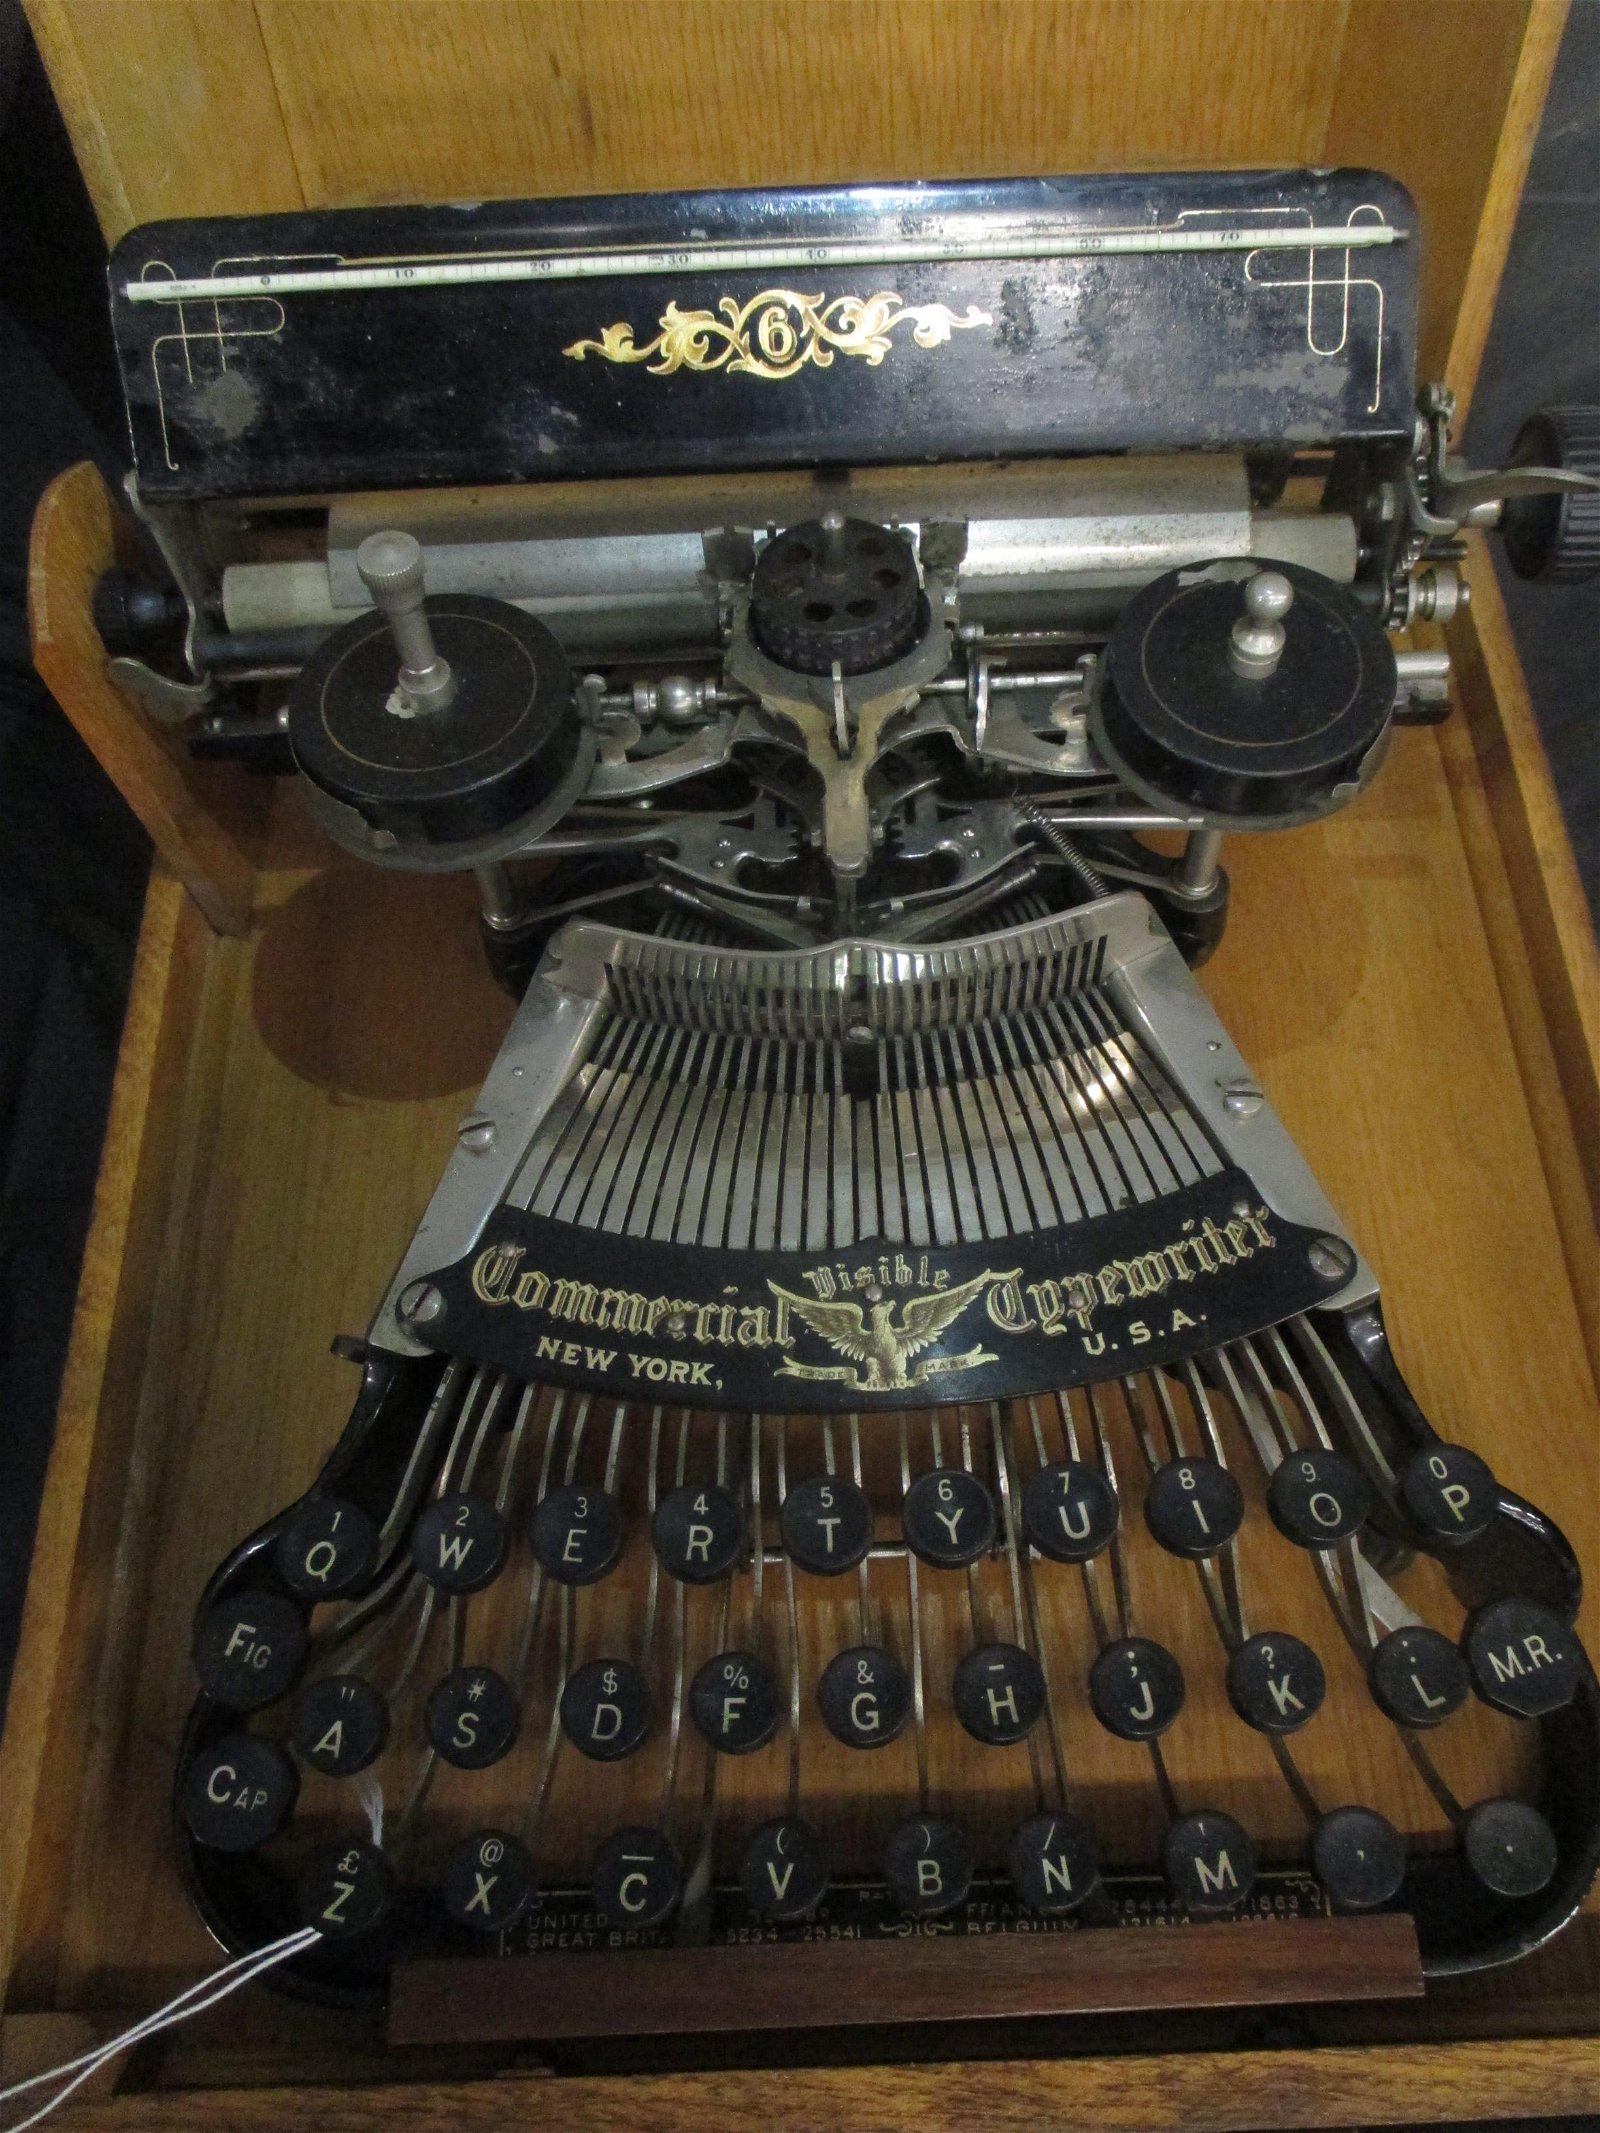 ANTIQUE COMMERCIAL VISIBLE TYPEWRITER